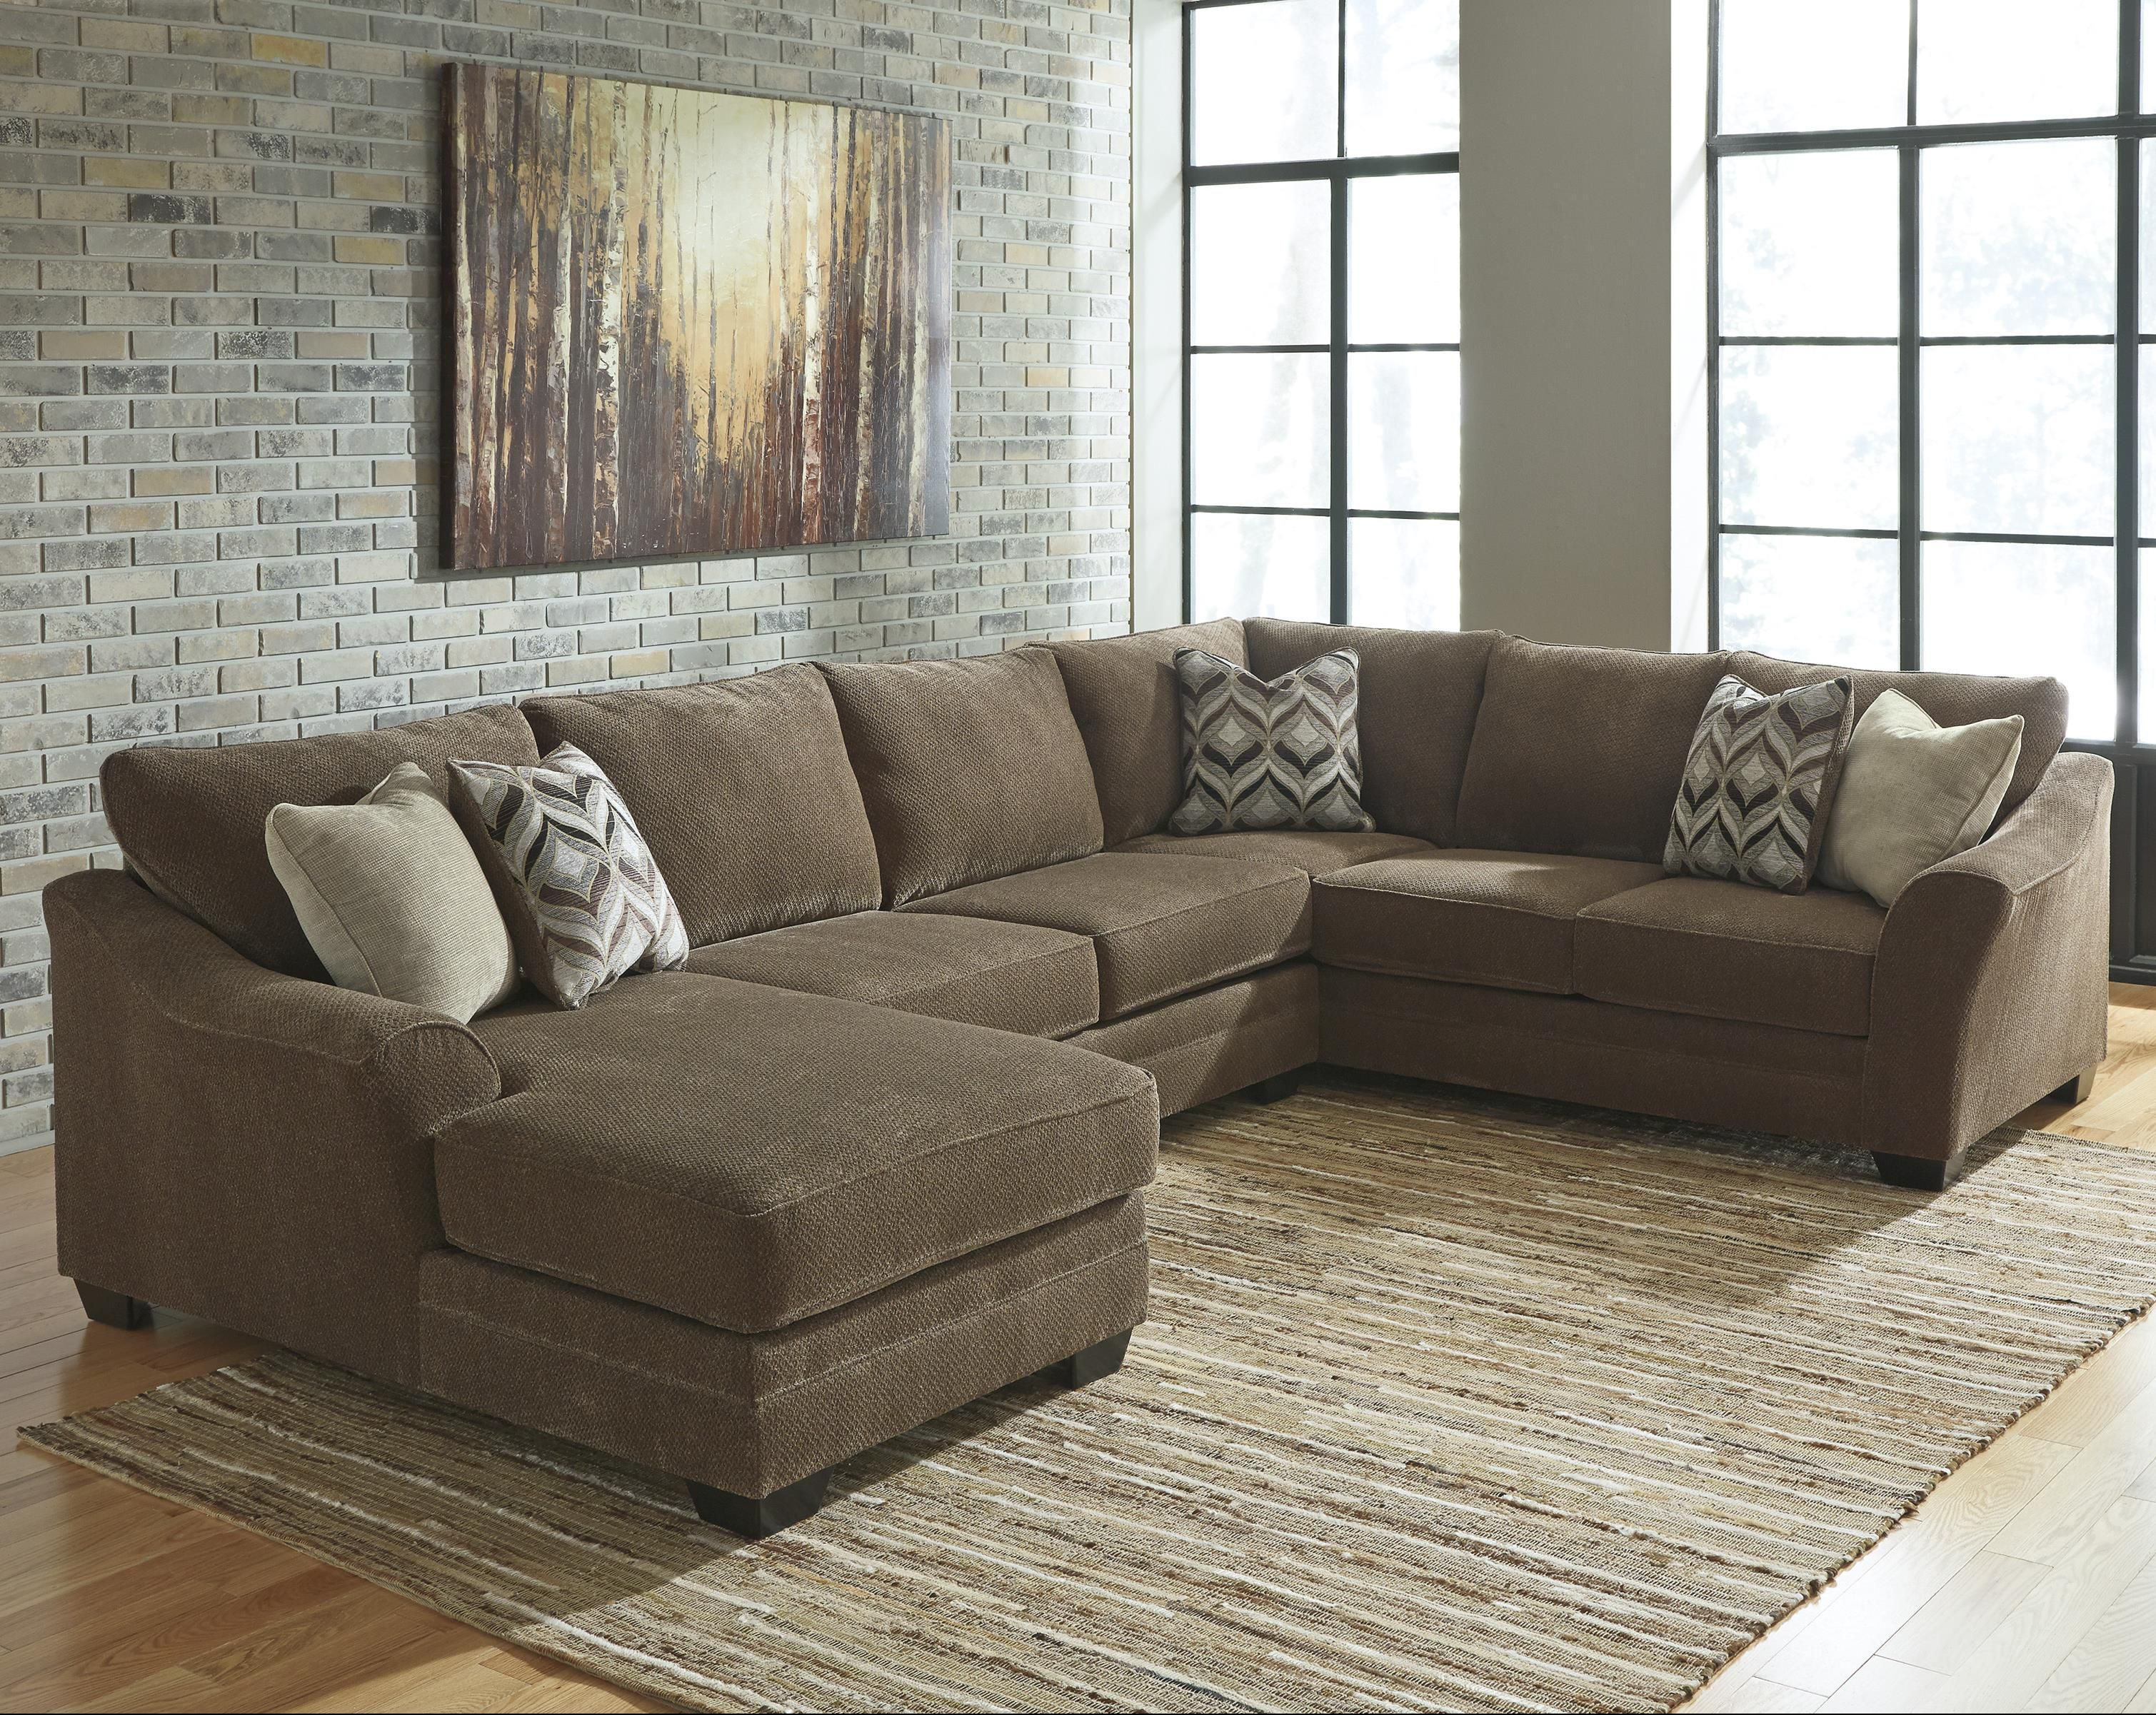 Justyna Contemporary 3 Piece Sectional with Left Chaise by Benchcraft